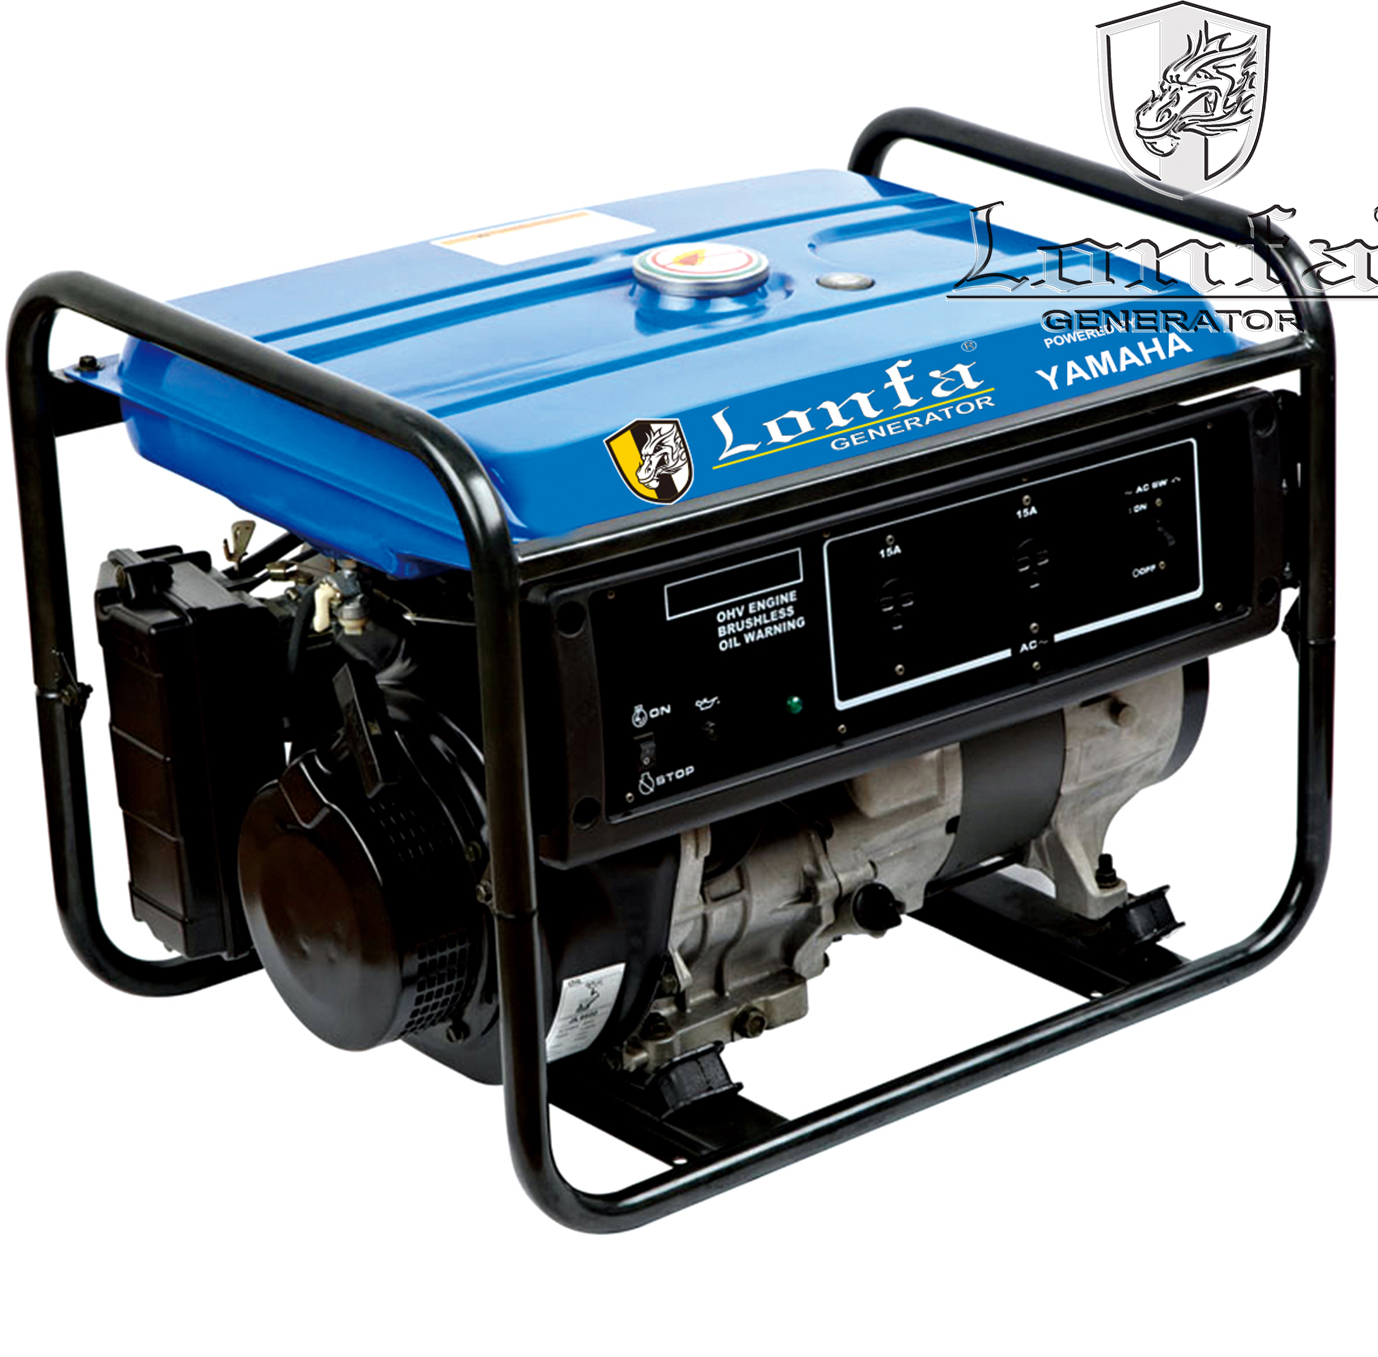 Yamaha design gasoline generator ef2600 buy yamaha for Honda vs yamaha generator